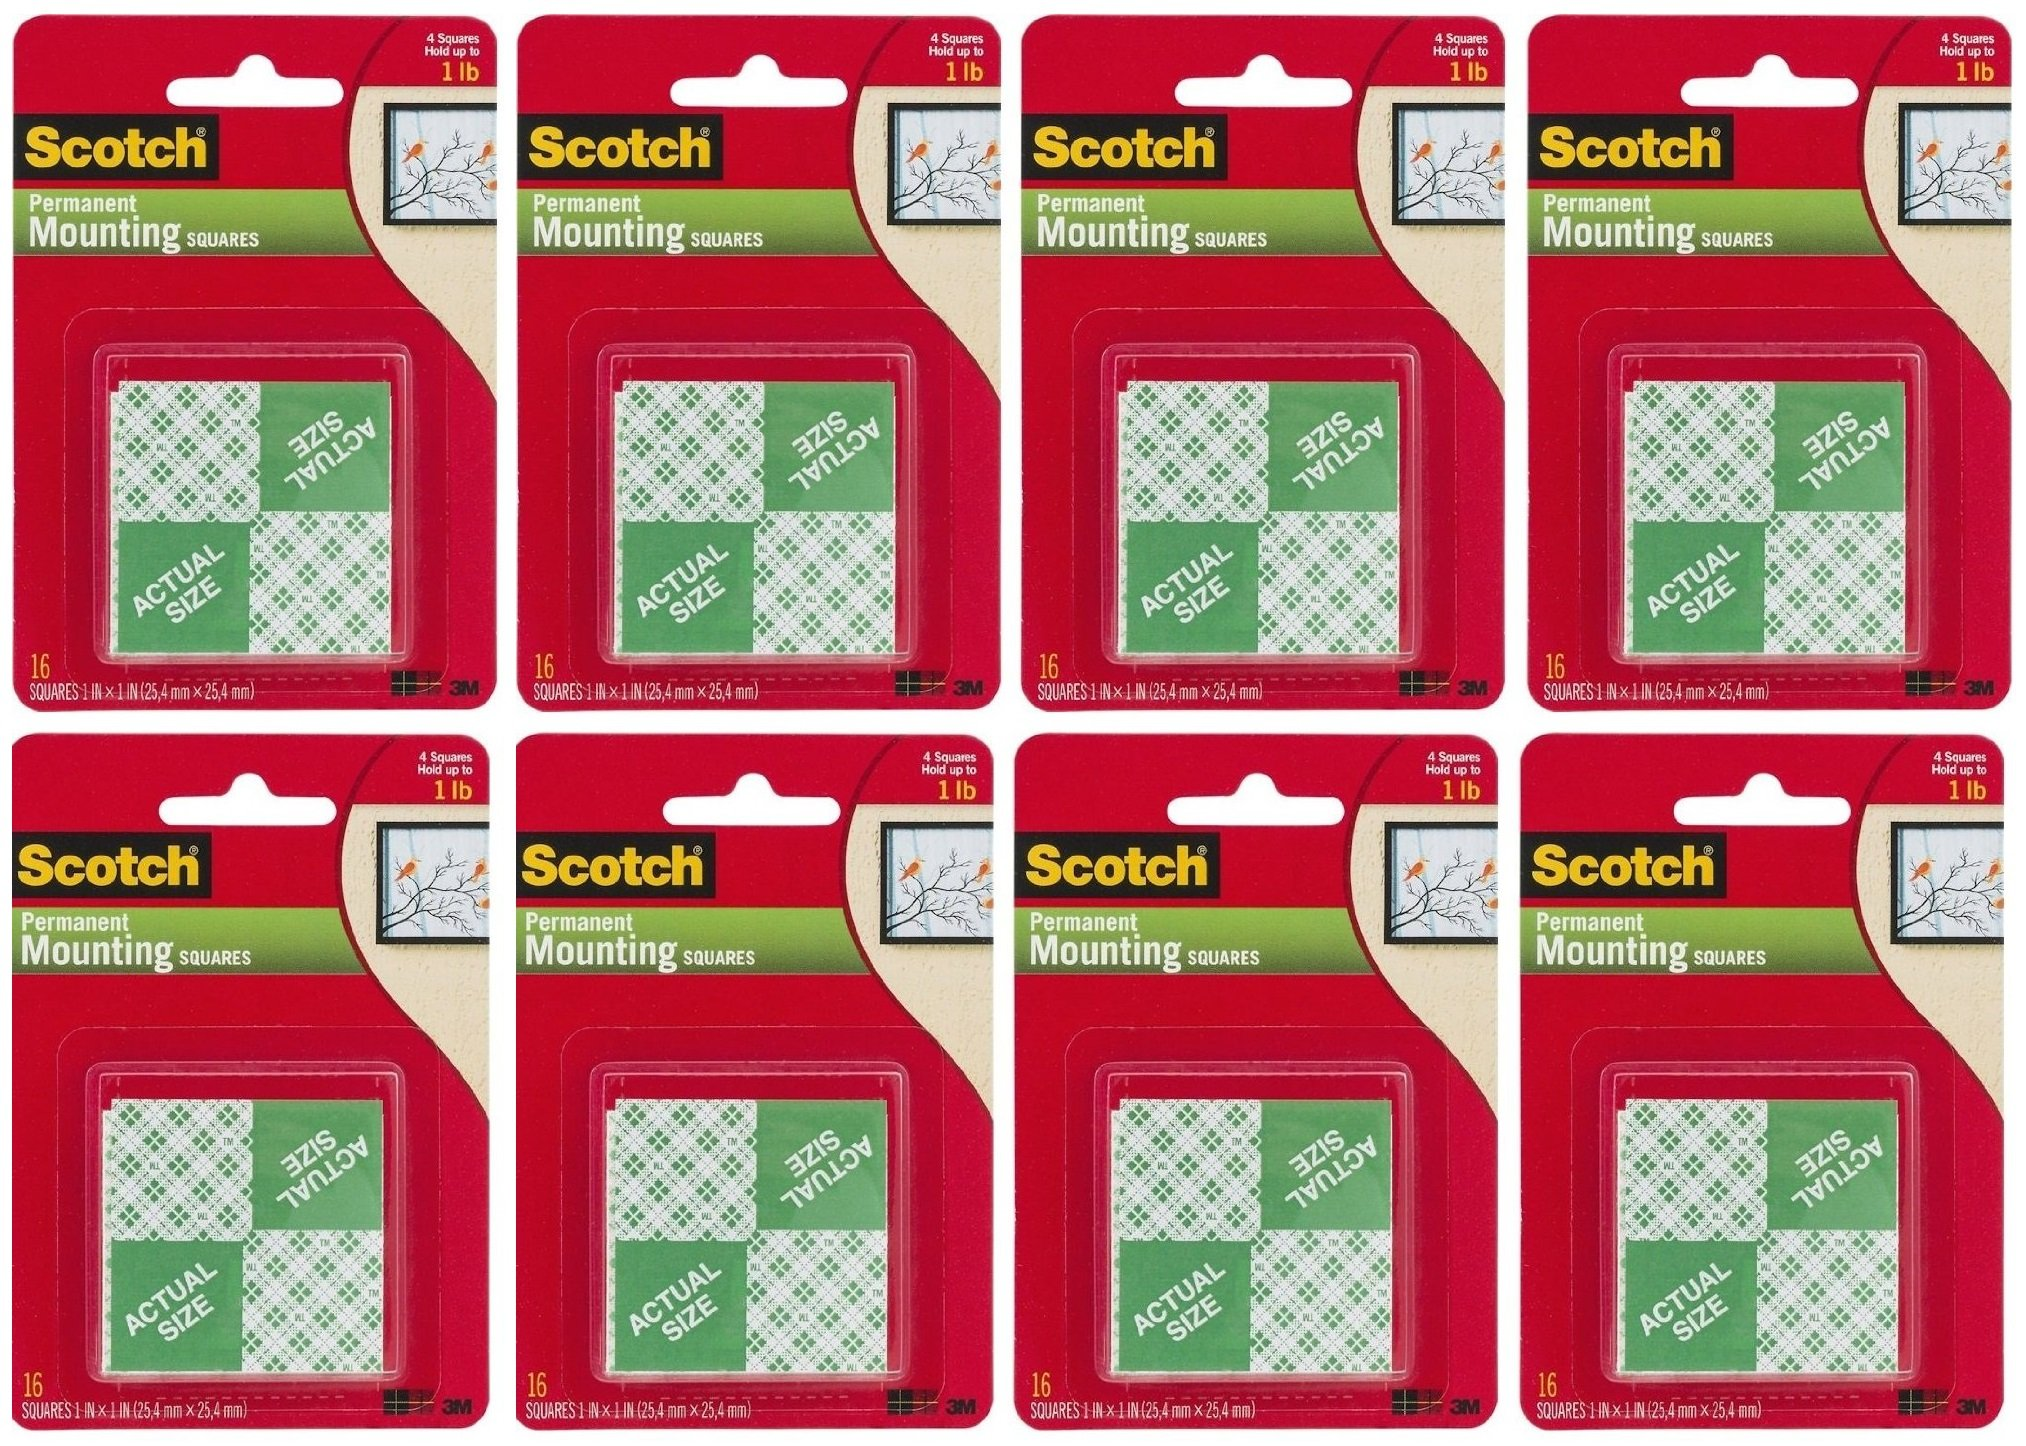 3M Scotch Precut Foam Mounting Squares Heavy Duty, 1 Inch, Total 128 Squares (8 X 16 Count Packages)